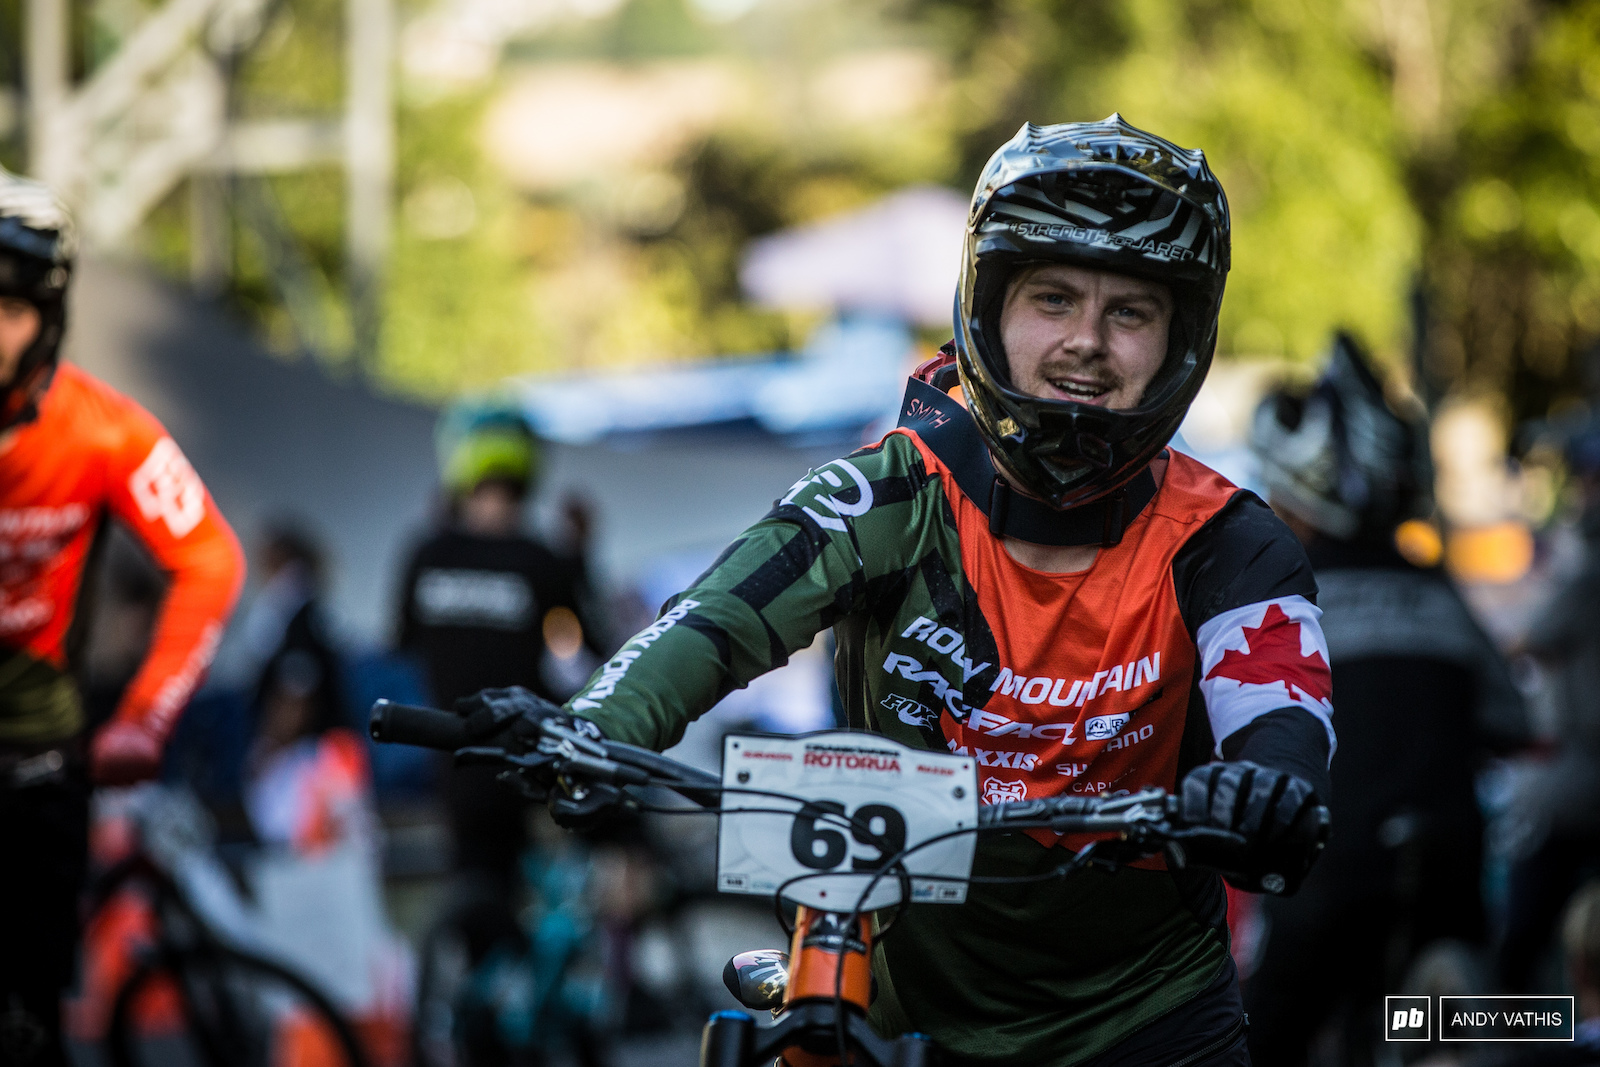 Remi Gauvin has his sights set on the EWS this weekend. I guess you can call this training then.